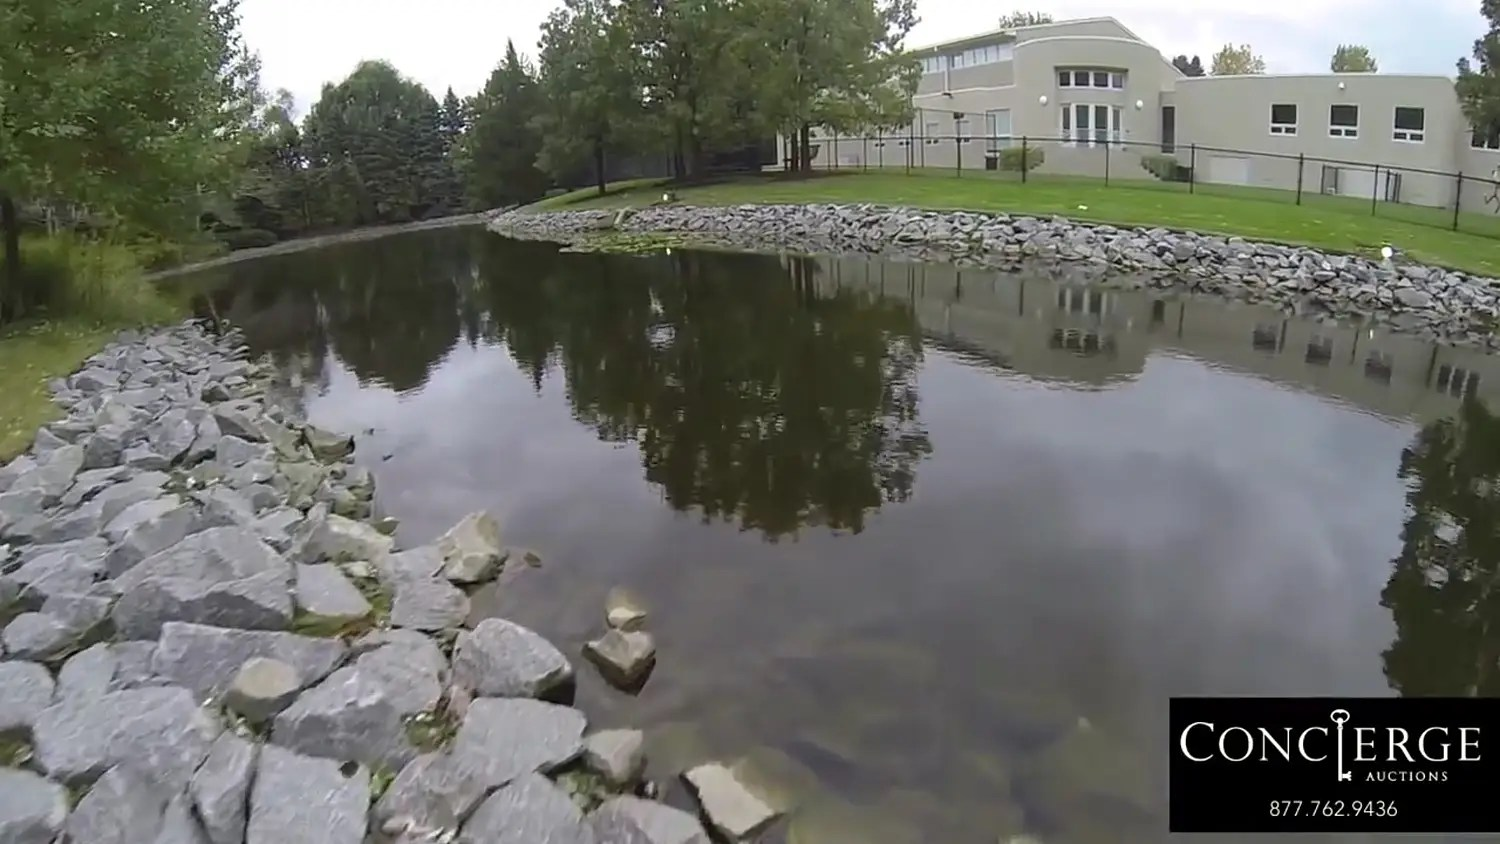 There's a pond stocked with fish.